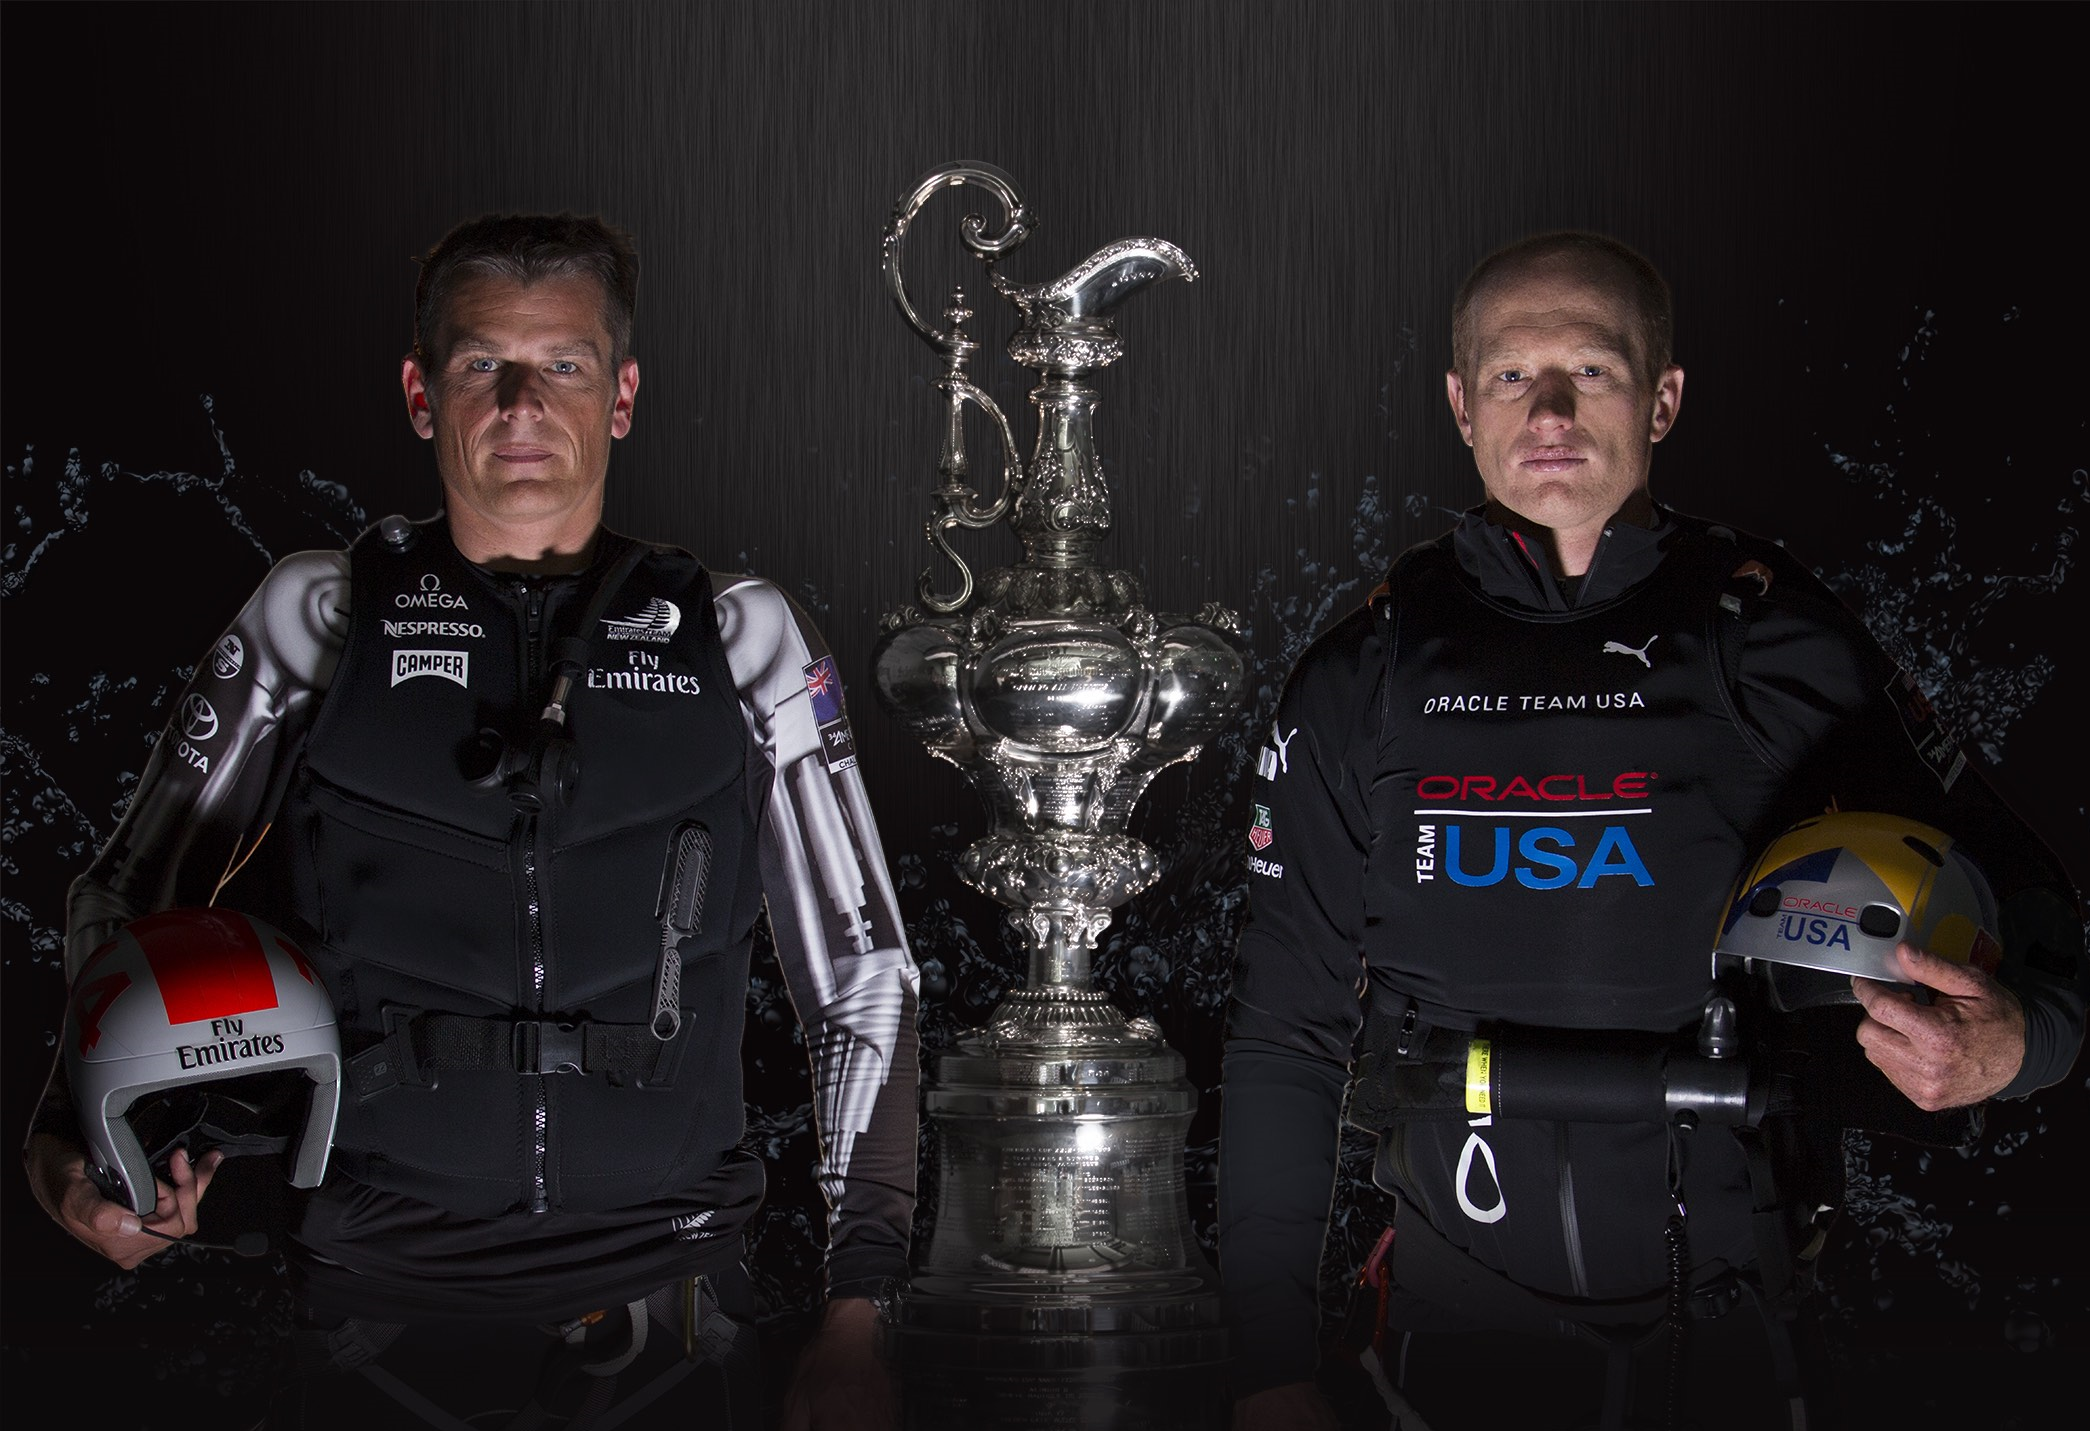 Firece Americas Cup rivals Dean Barker and Jimmy Spithill